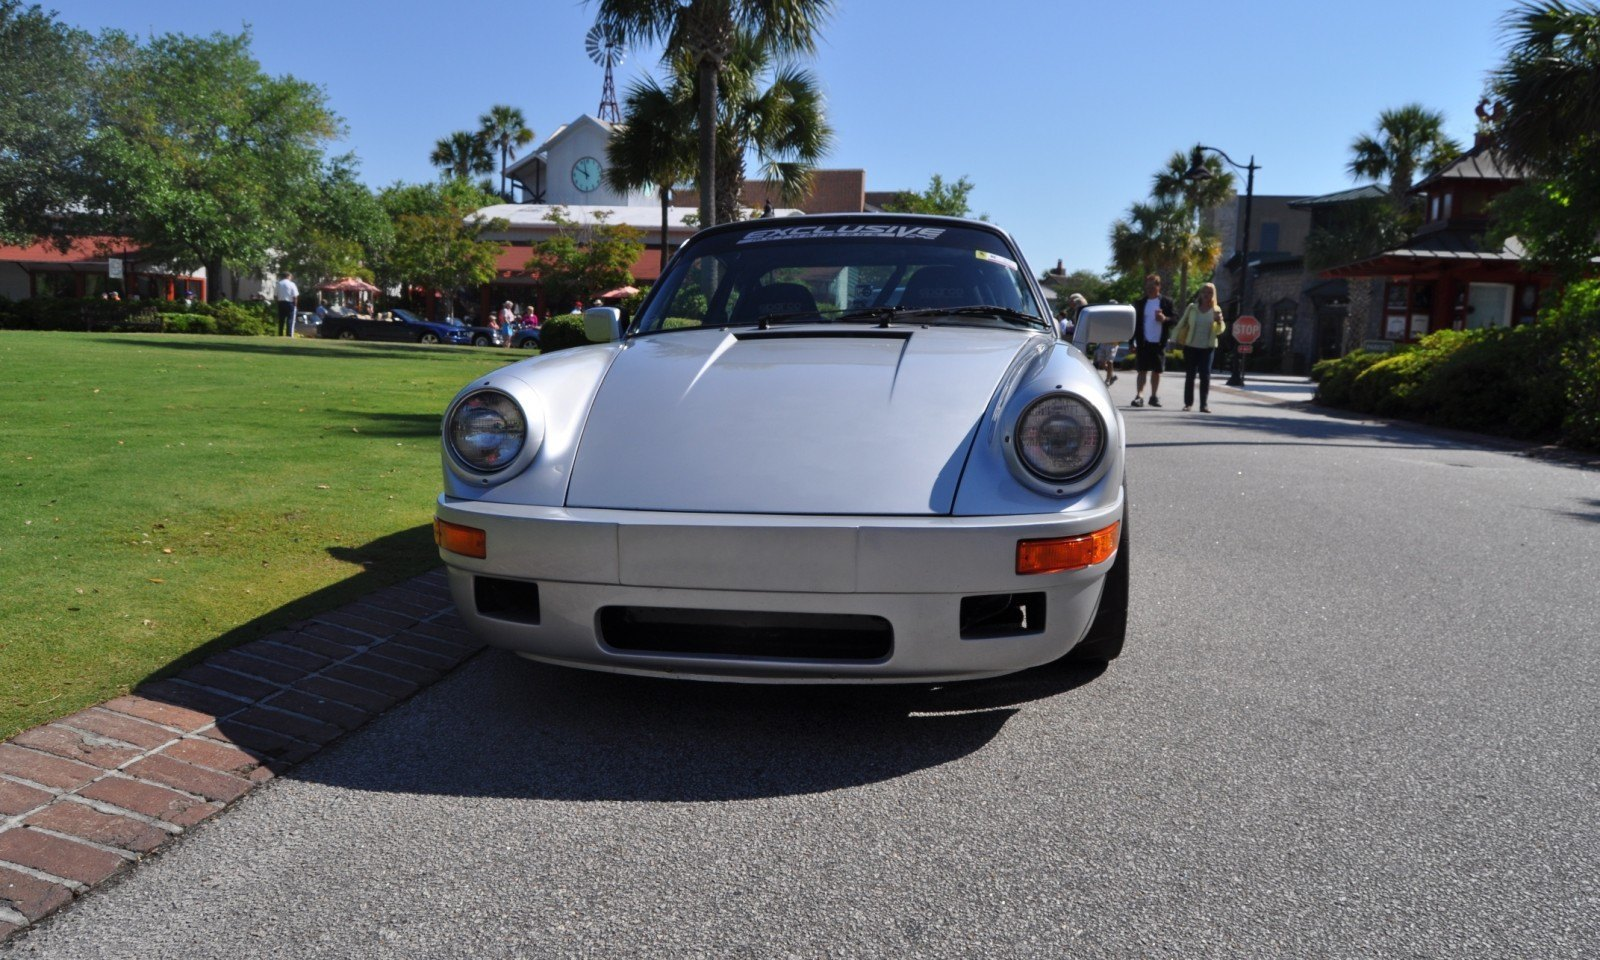 Track-Prepped Porsche 986 911 Whale Tale Is Mighty Desirable Machine 3